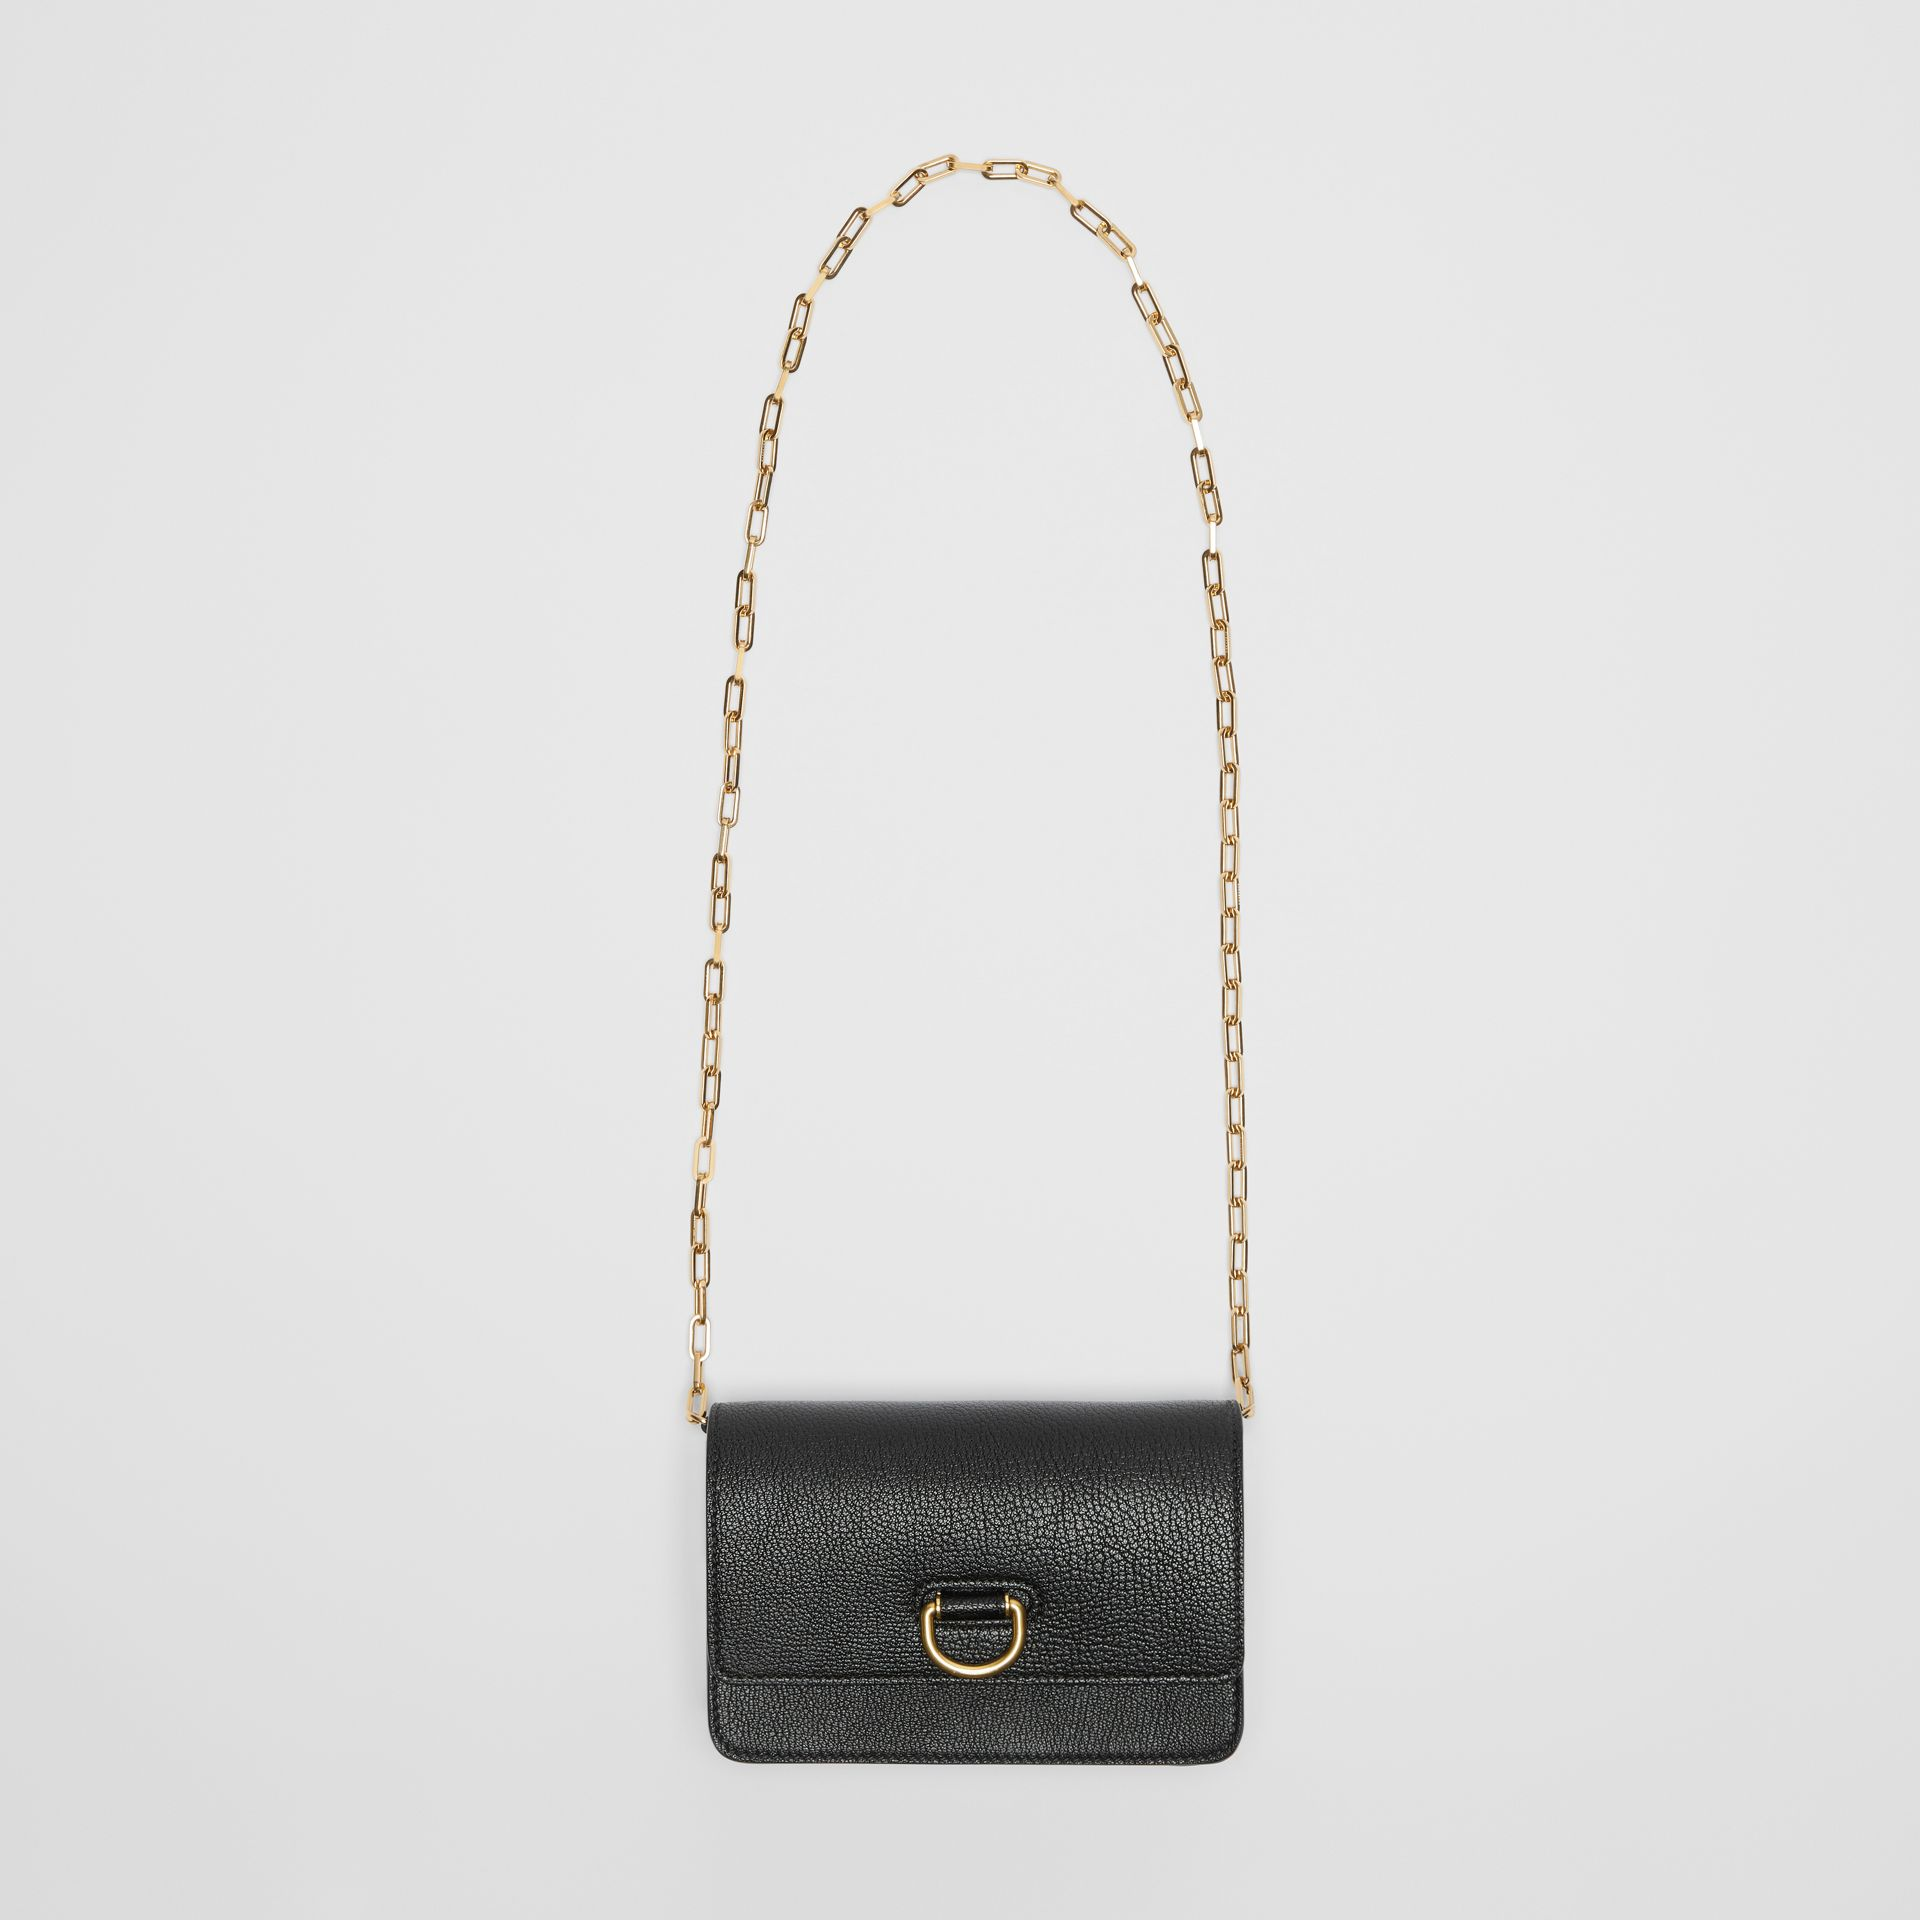 Mini sac The D-ring en cuir (Noir) - Femme | Burberry Canada - photo de la galerie 2